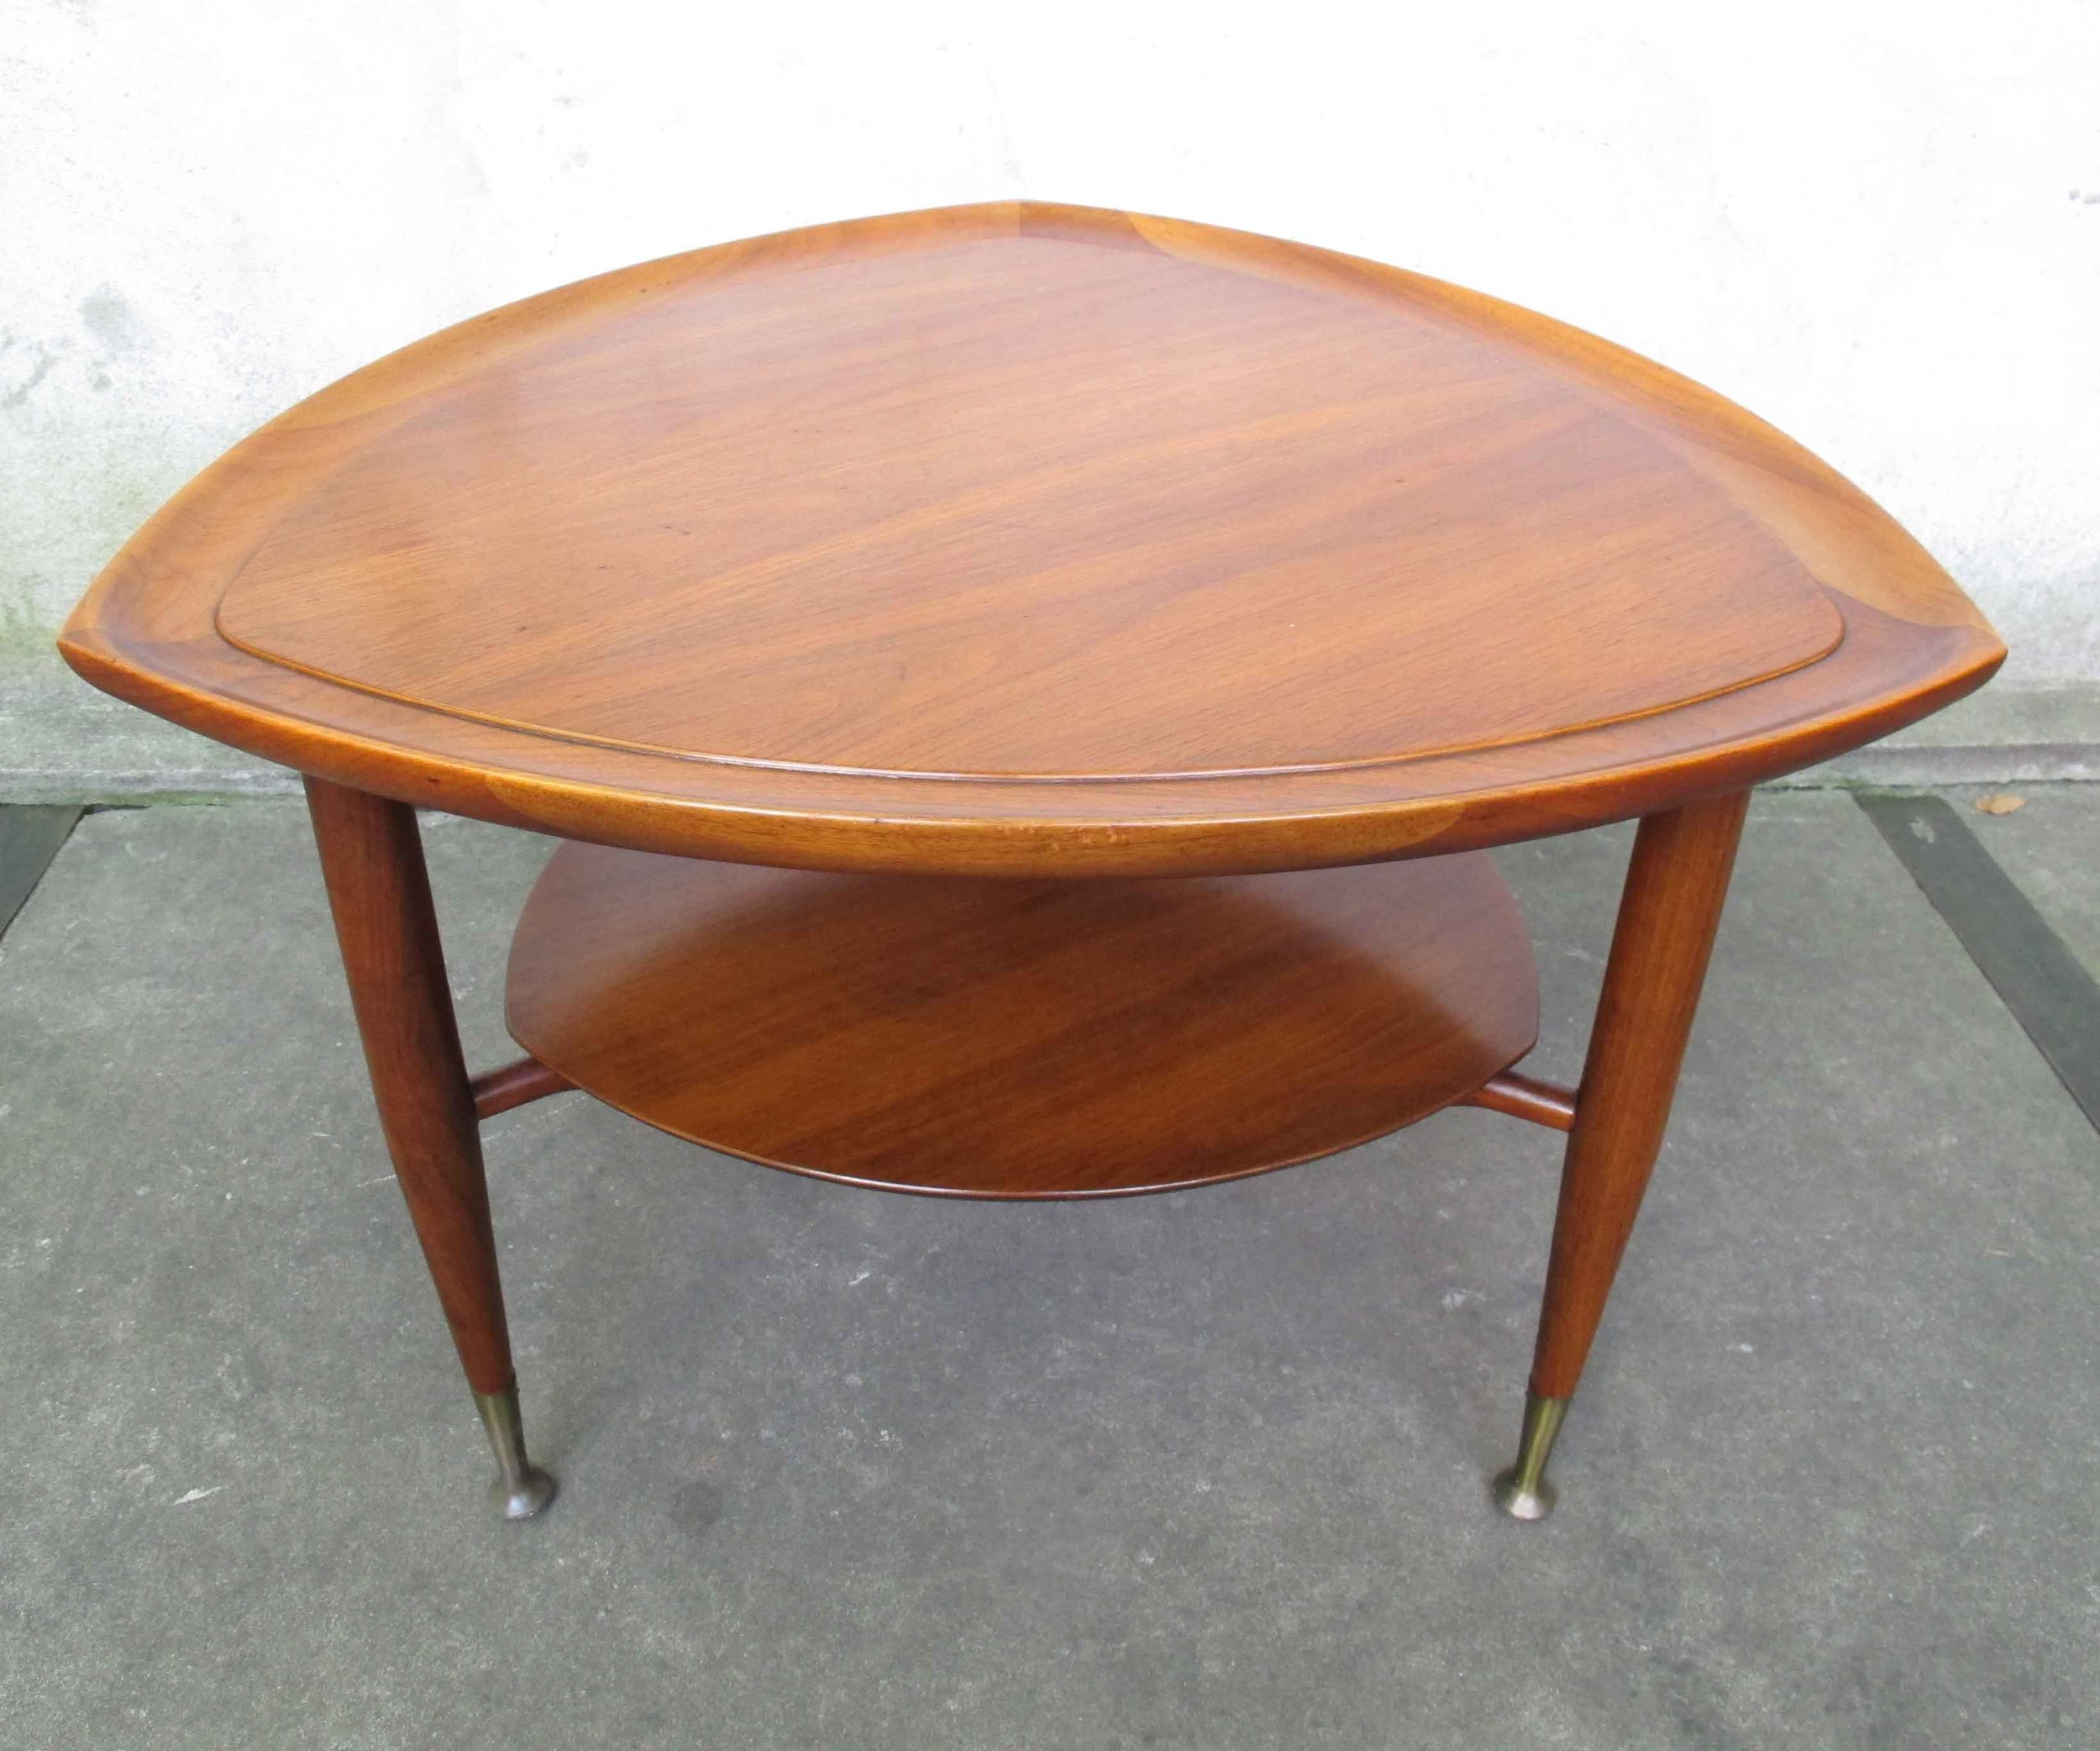 MID CENTURY MODERN WALNUT ATOMIC TWO-TIER SIDE TABLE